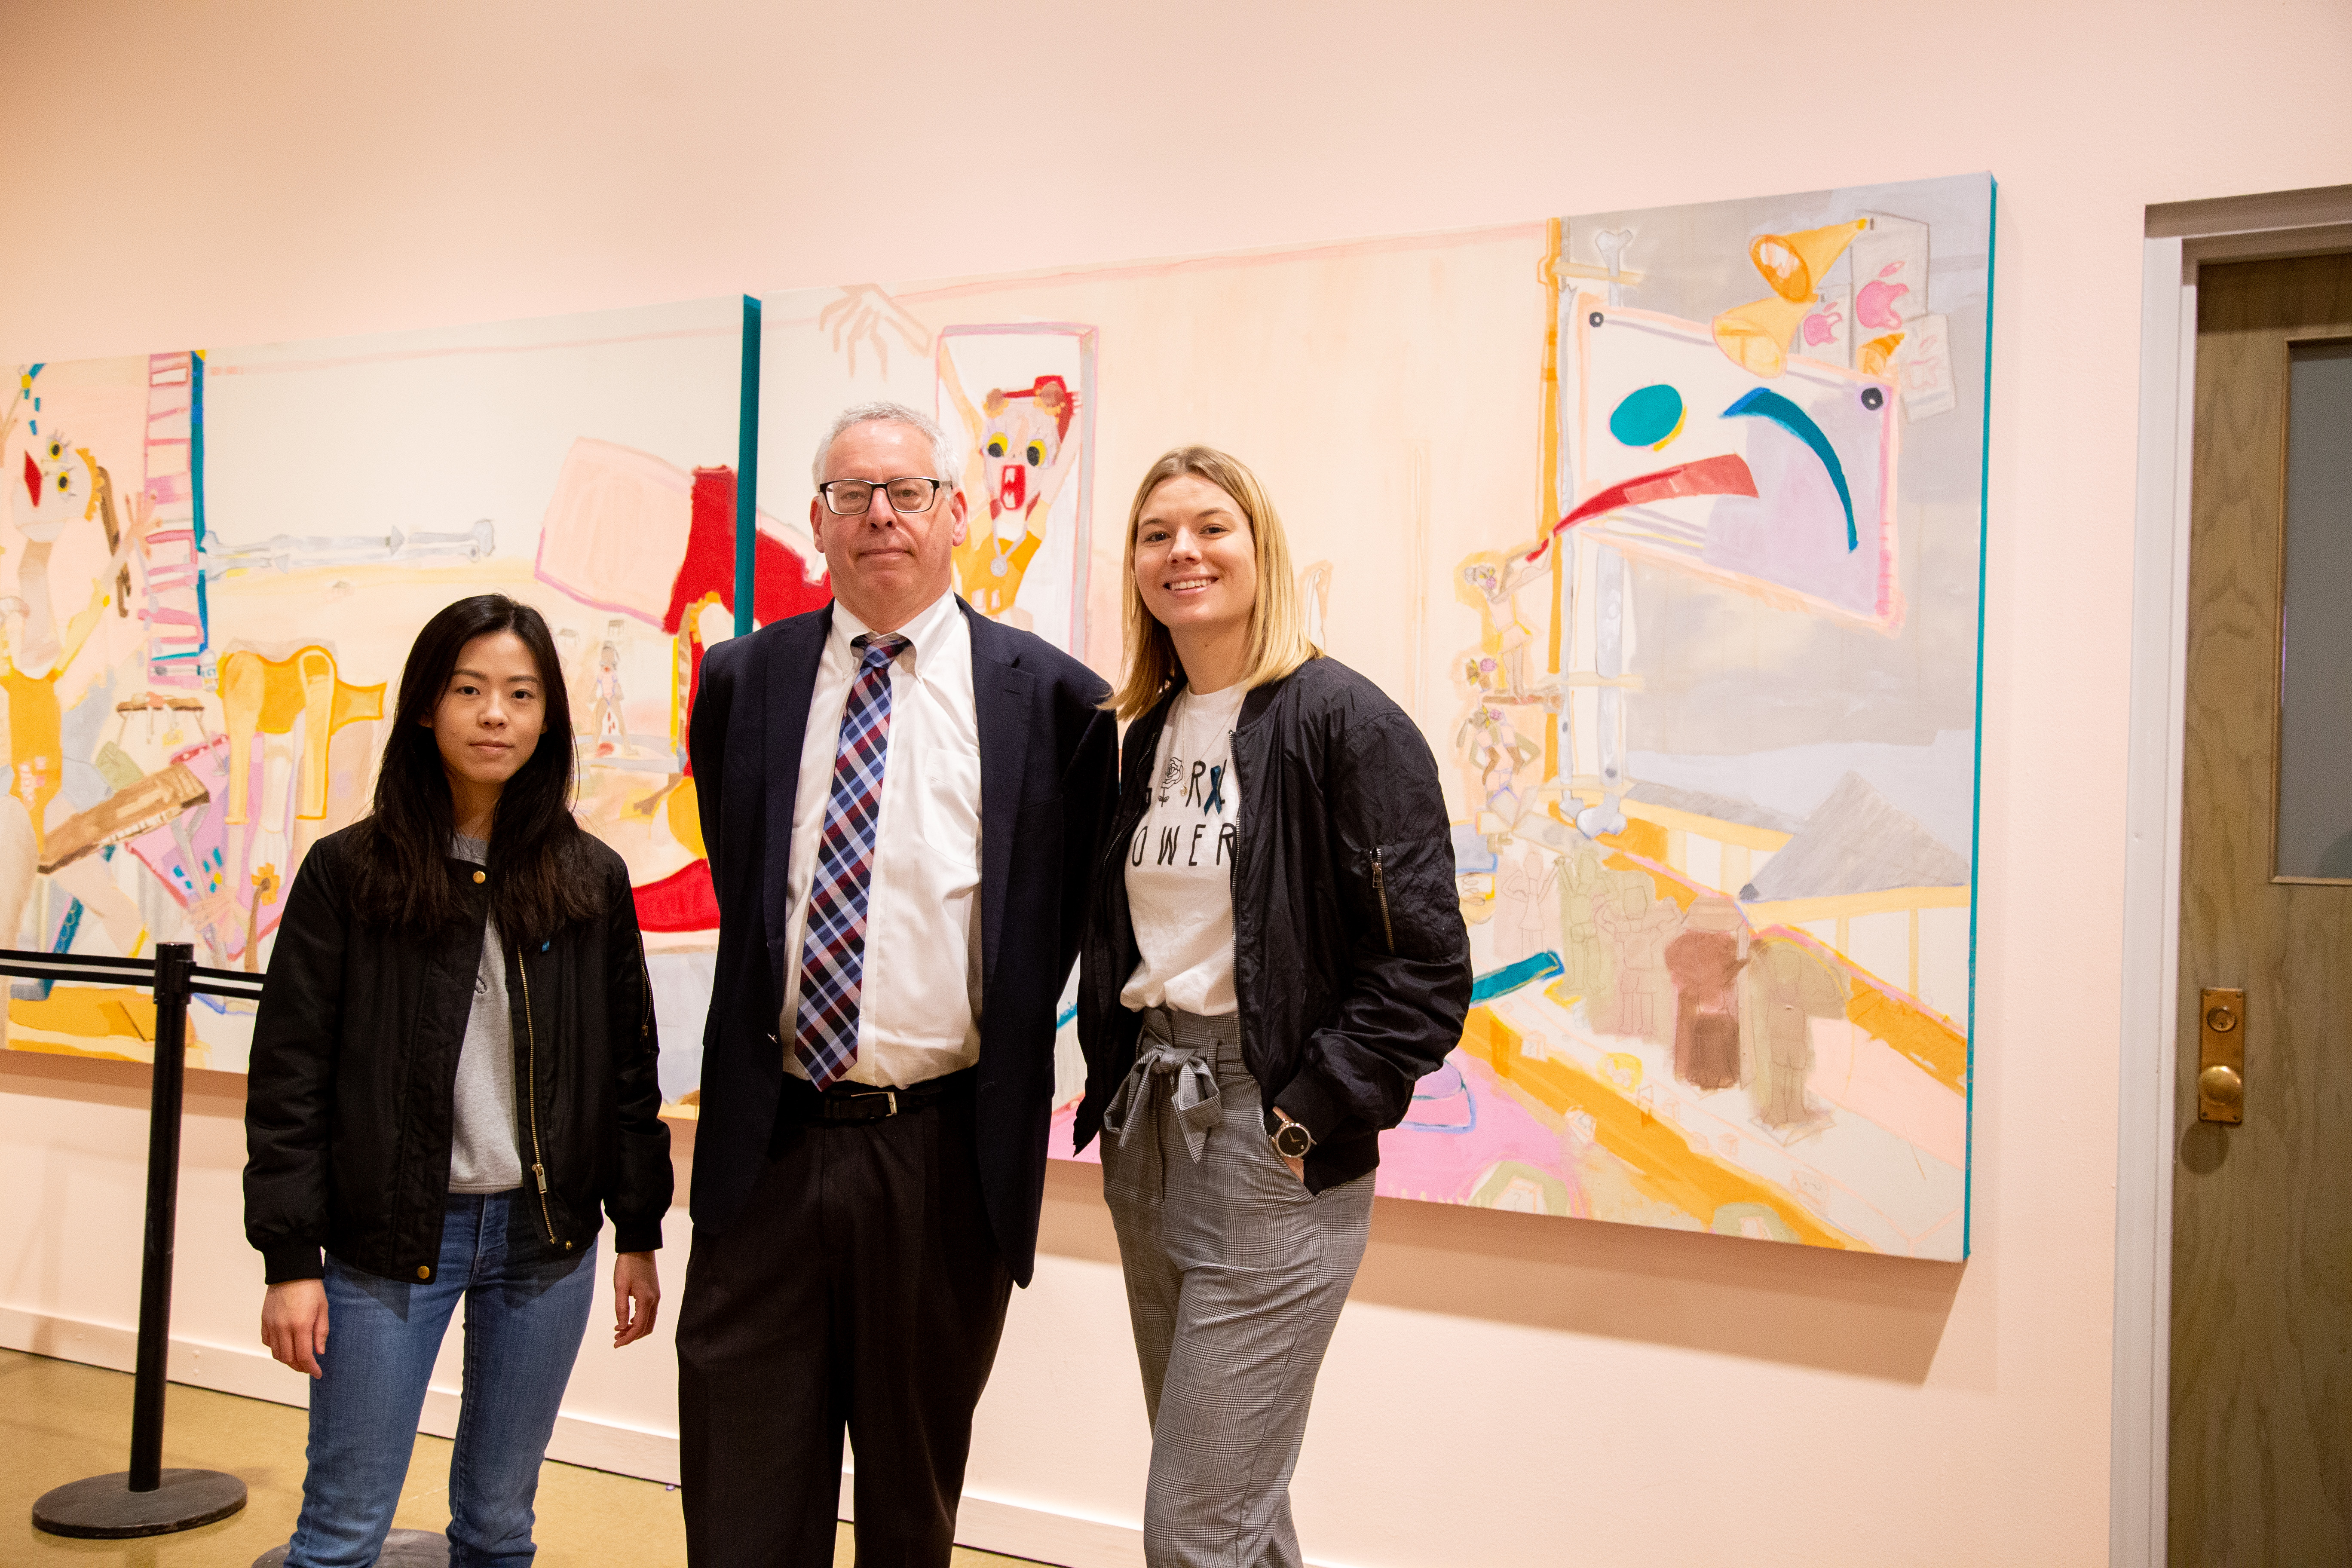 Photo of Tianyi Xie, Mark Auslander and Amanda McCafferty